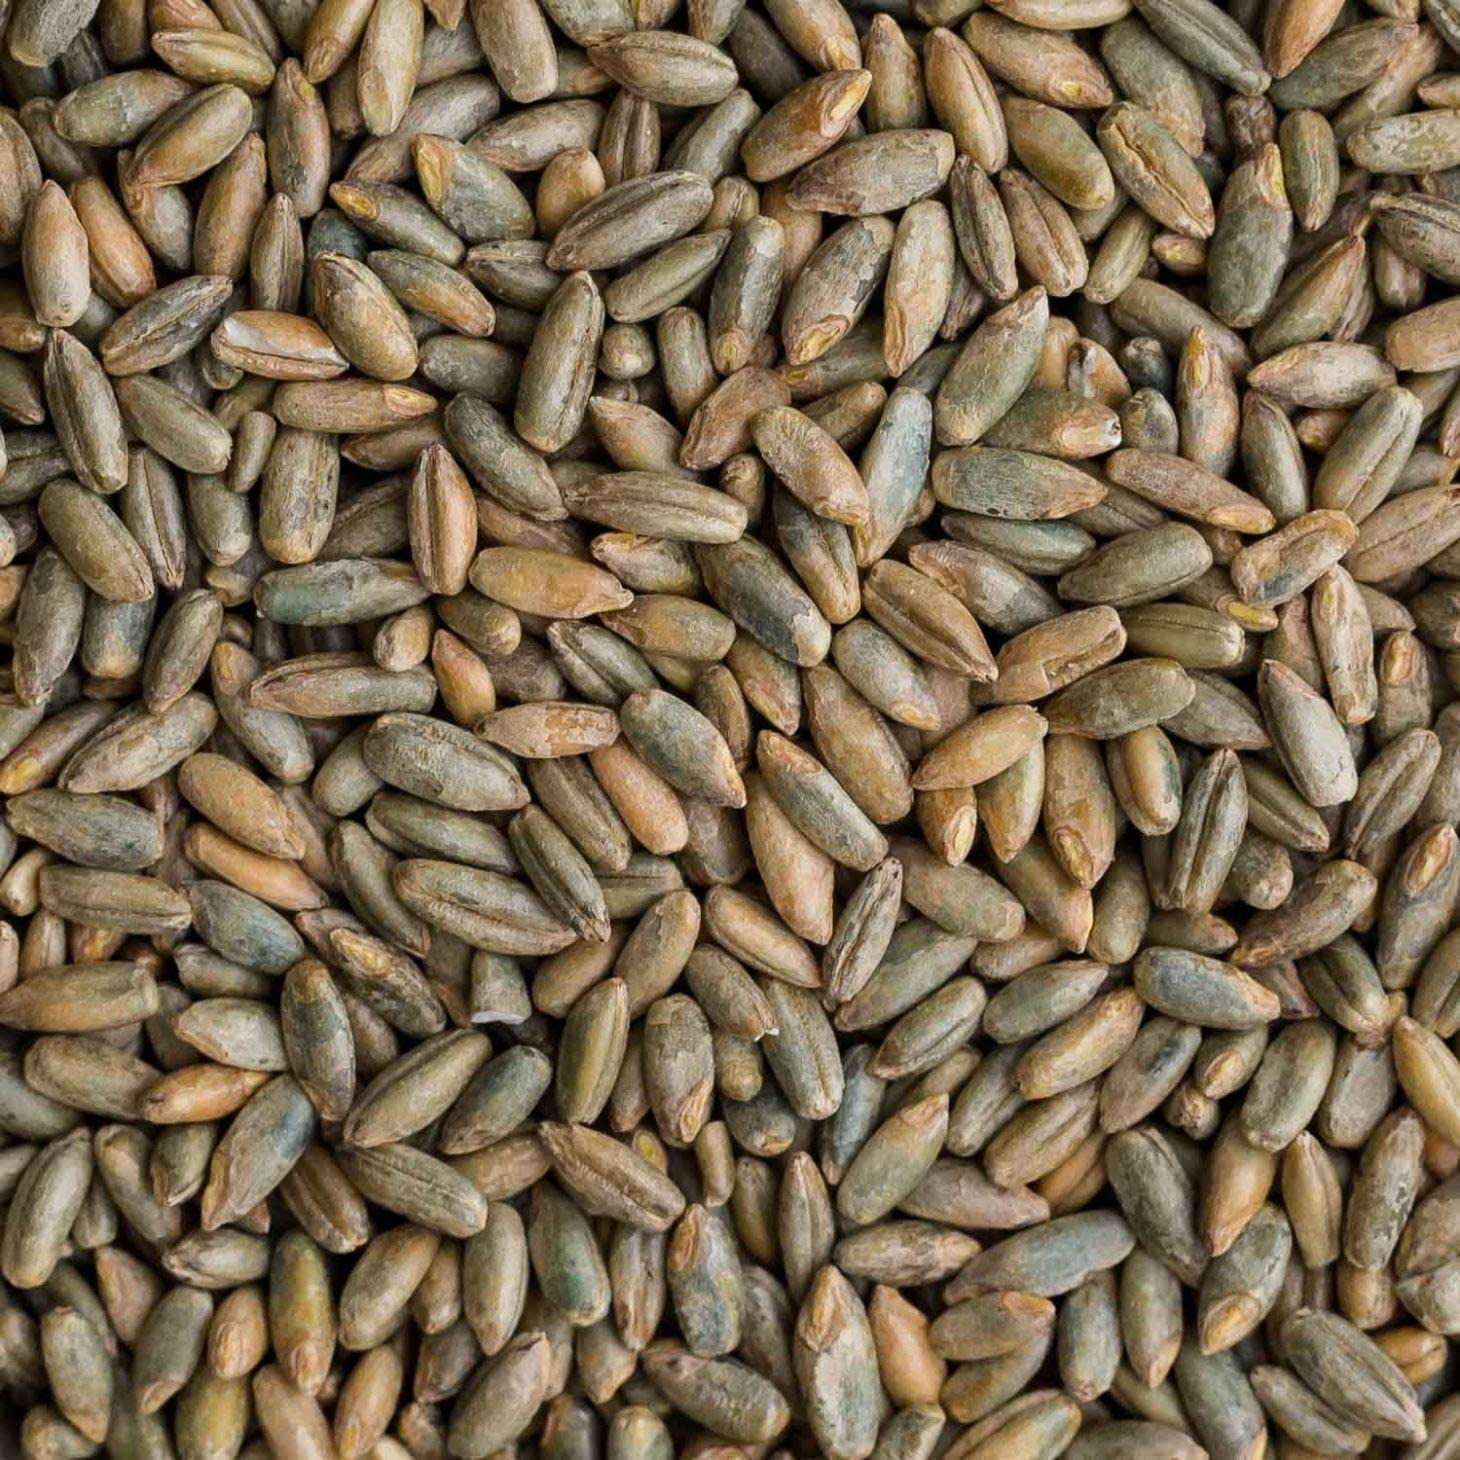 Rye Berries | 5 Pounds | High in Fiber and Iron - 5 Pound Bag of Rye Berries